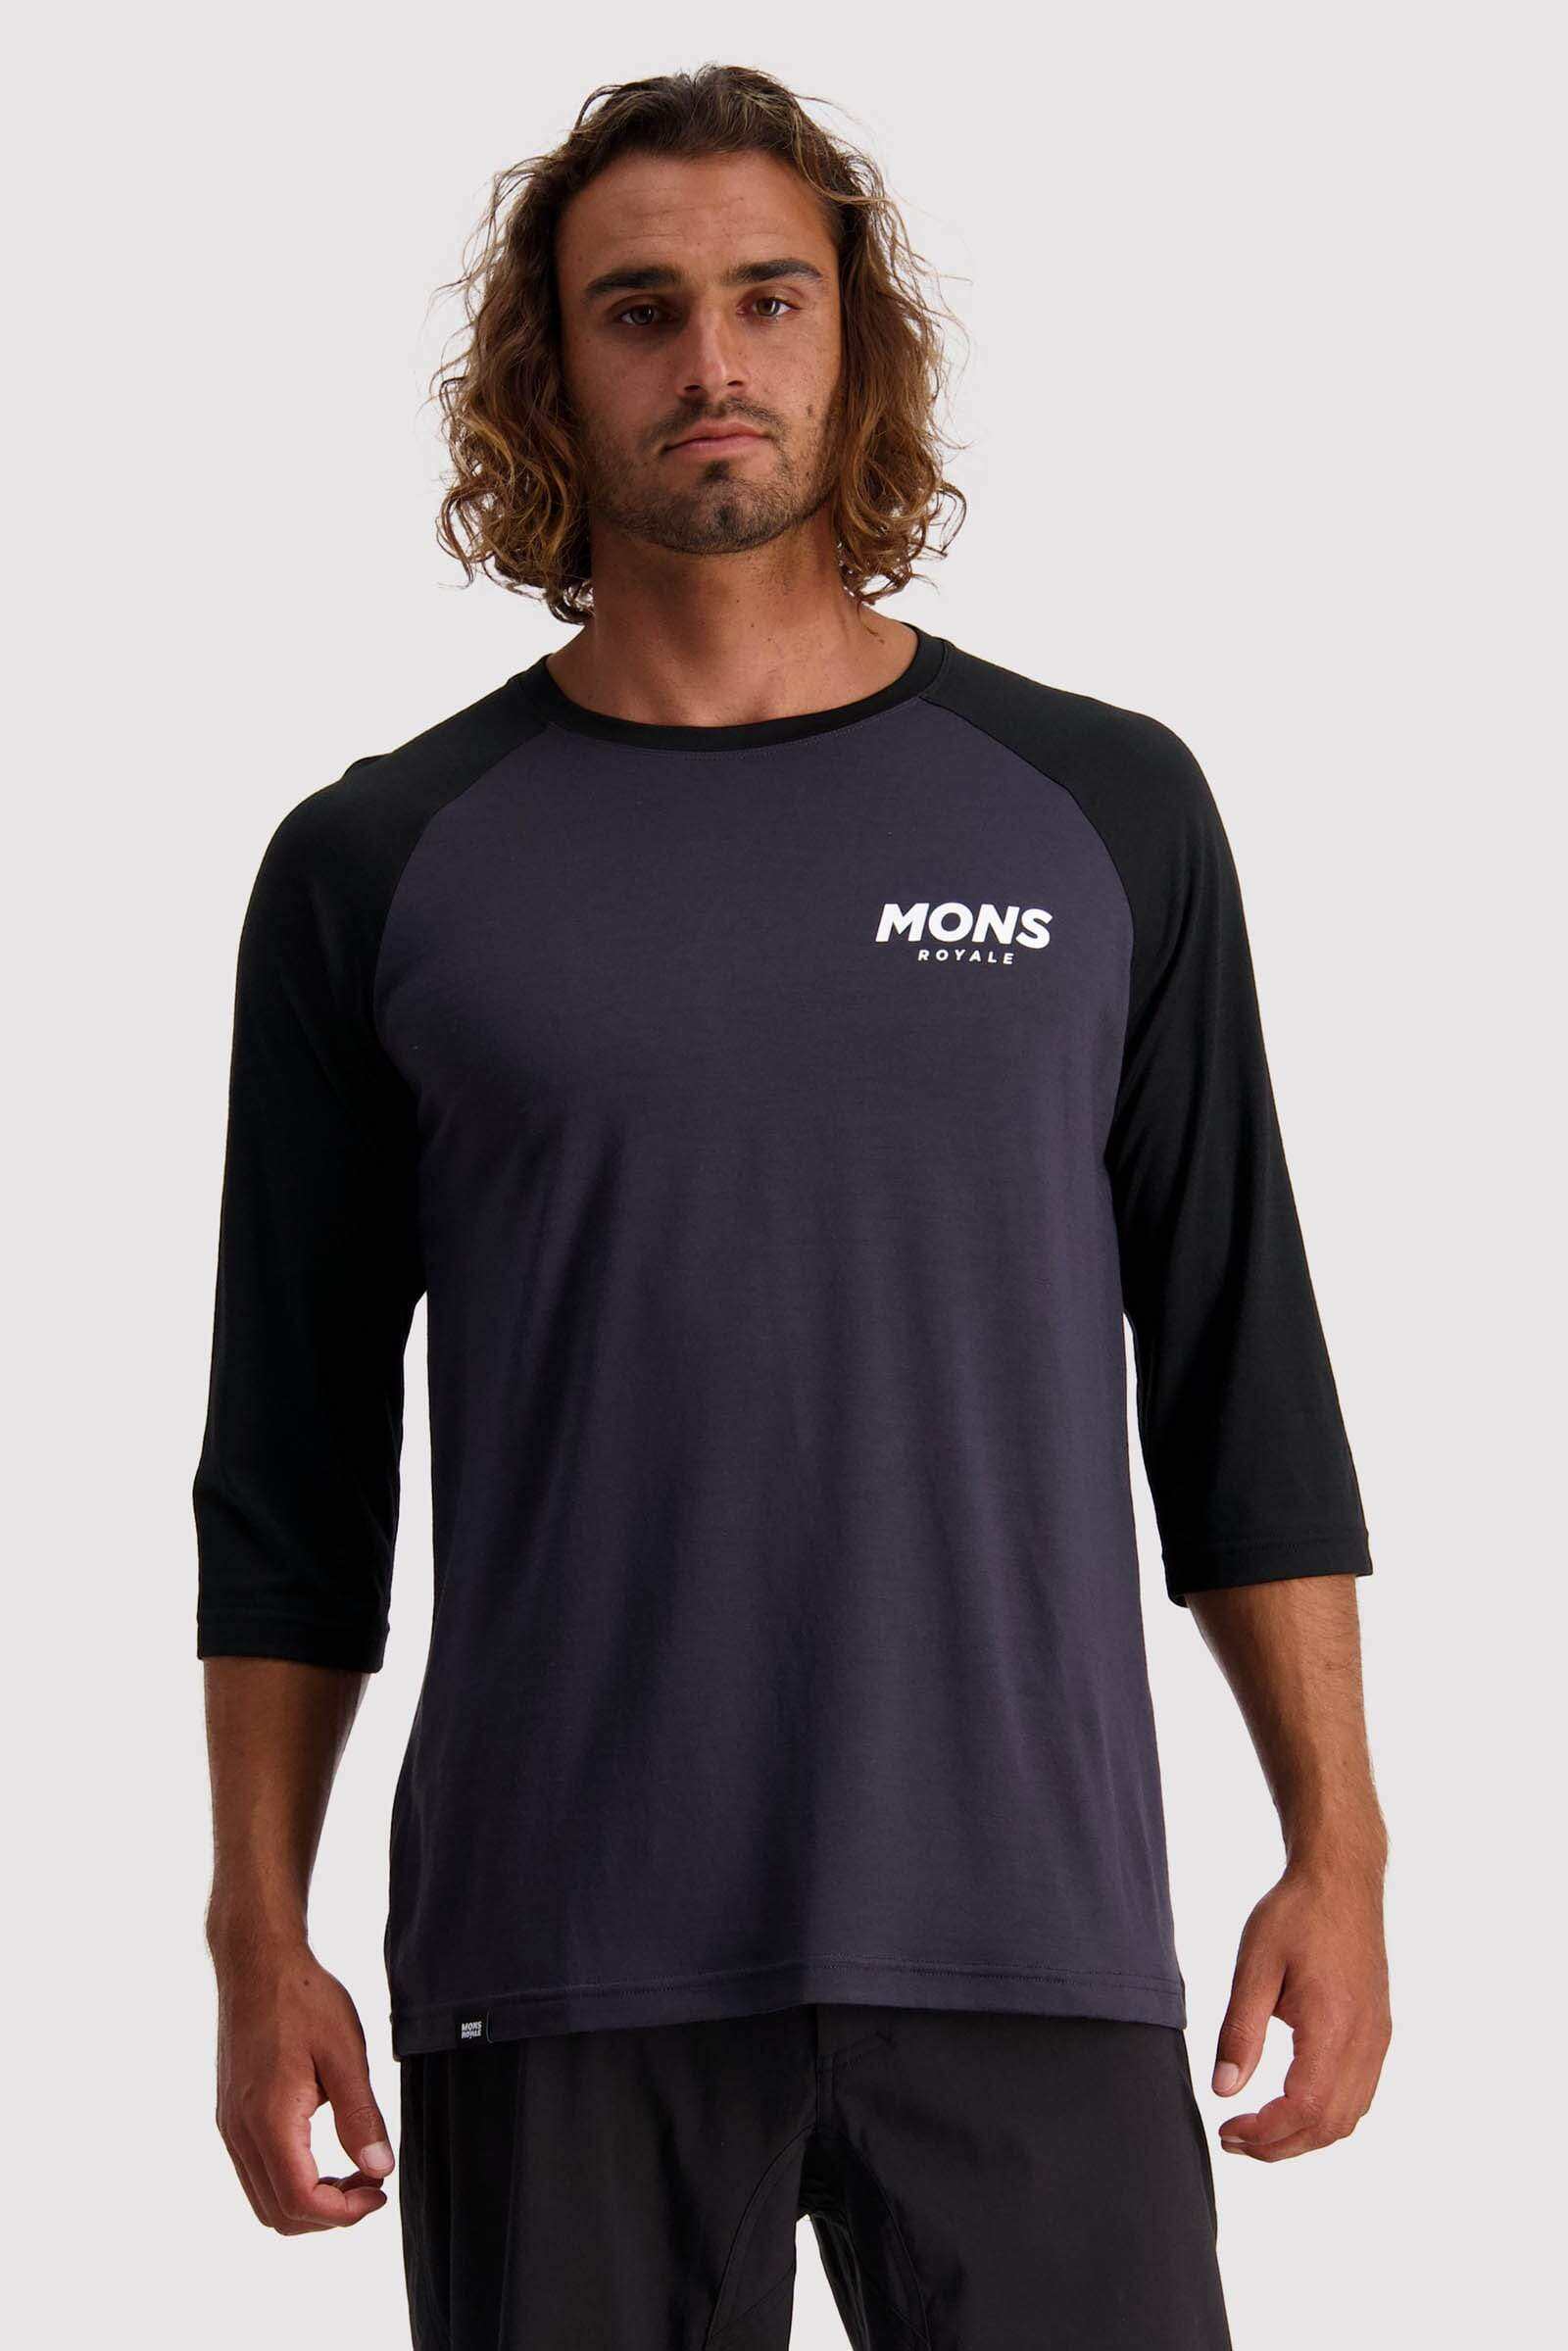 Tarn Freeride Raglan 3/4 - Black / 9 Iron